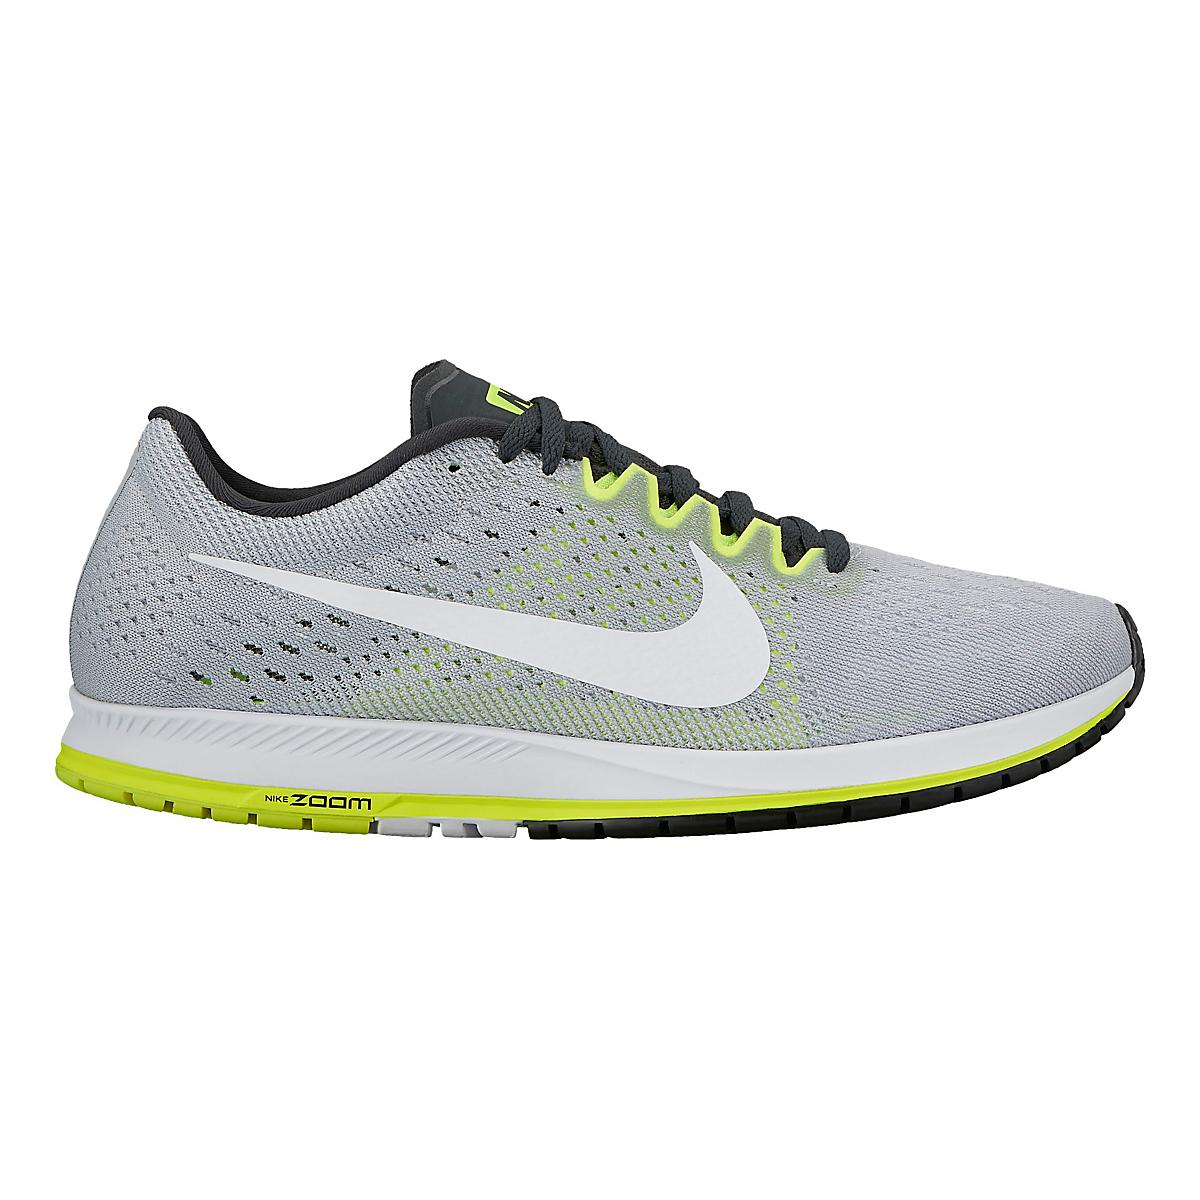 9d1766374d6a Nike Zoom Streak 6 Unisex Racing Shoe from Road Runner Sports